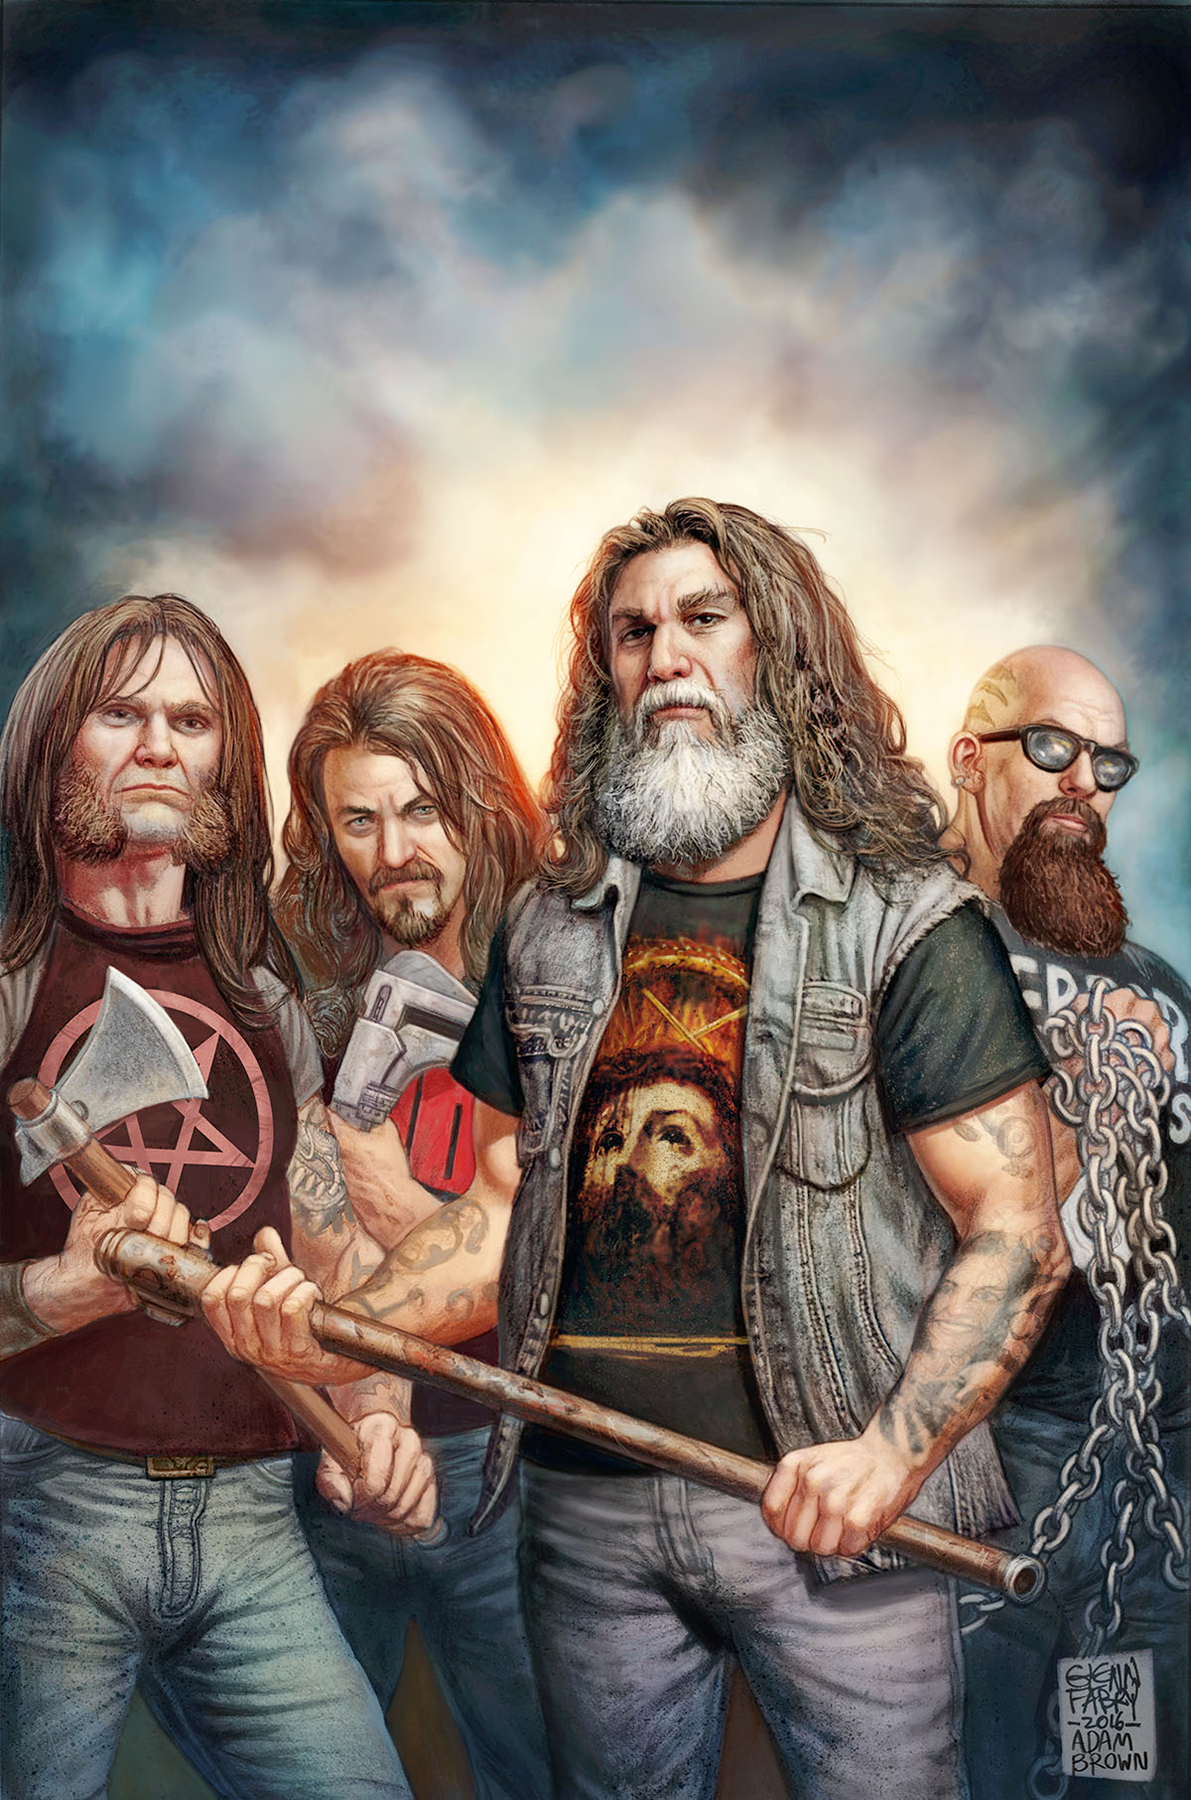 SLAYER REPENTLESS #2 (OF 3)